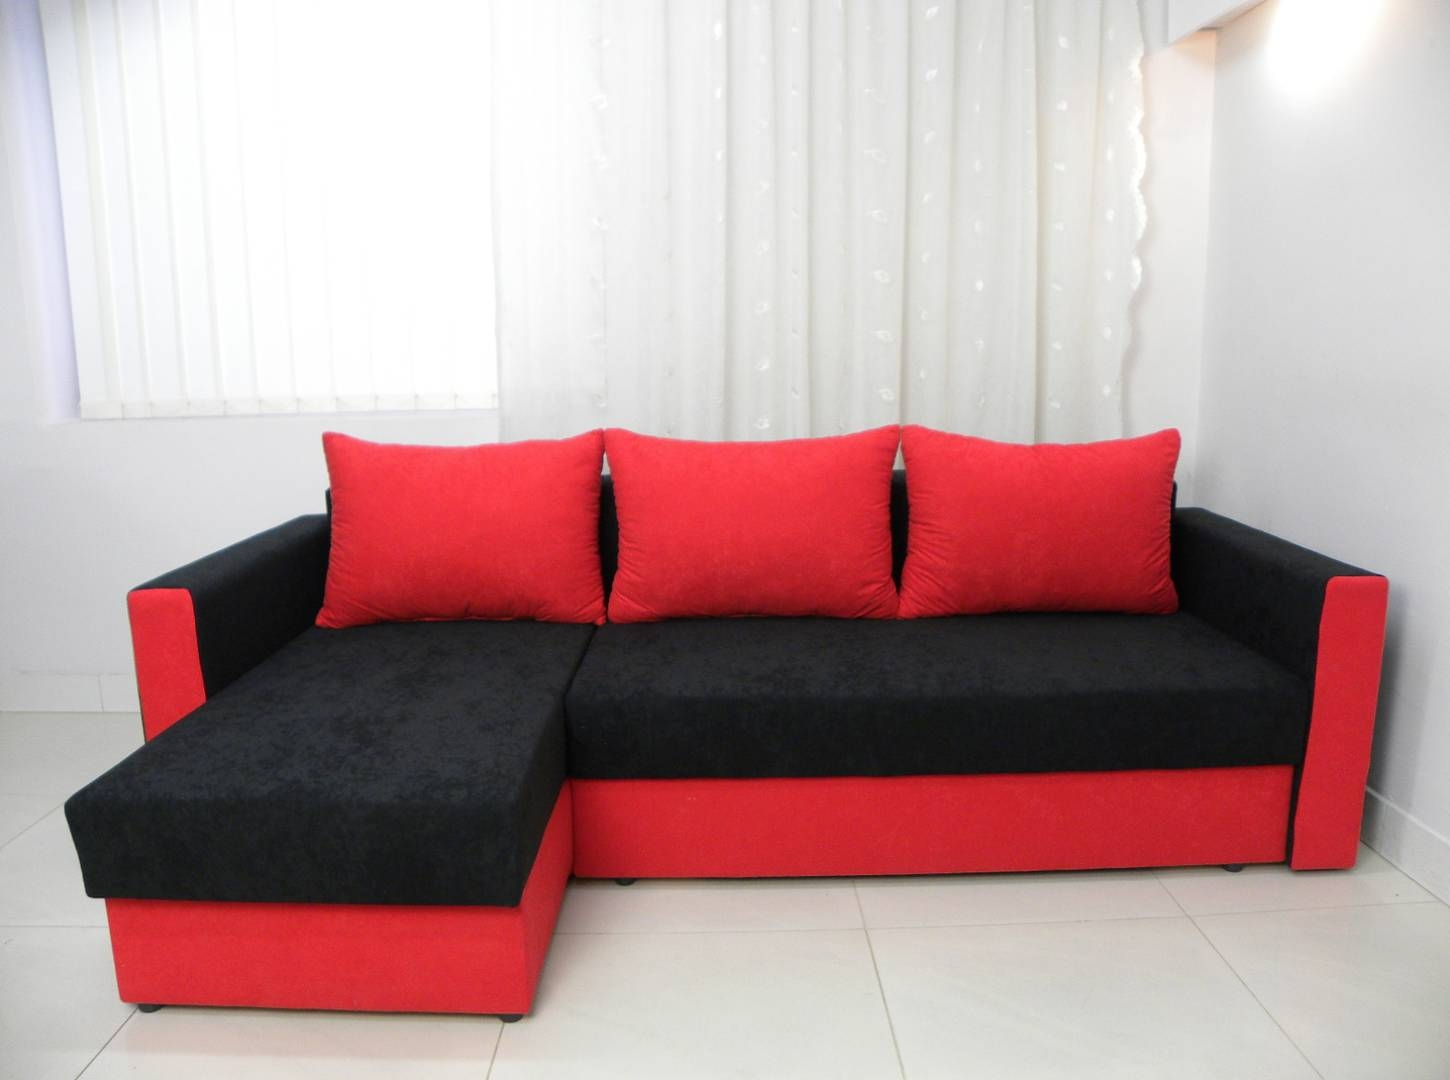 25 collection of sofa red and black Red sofas and loveseats